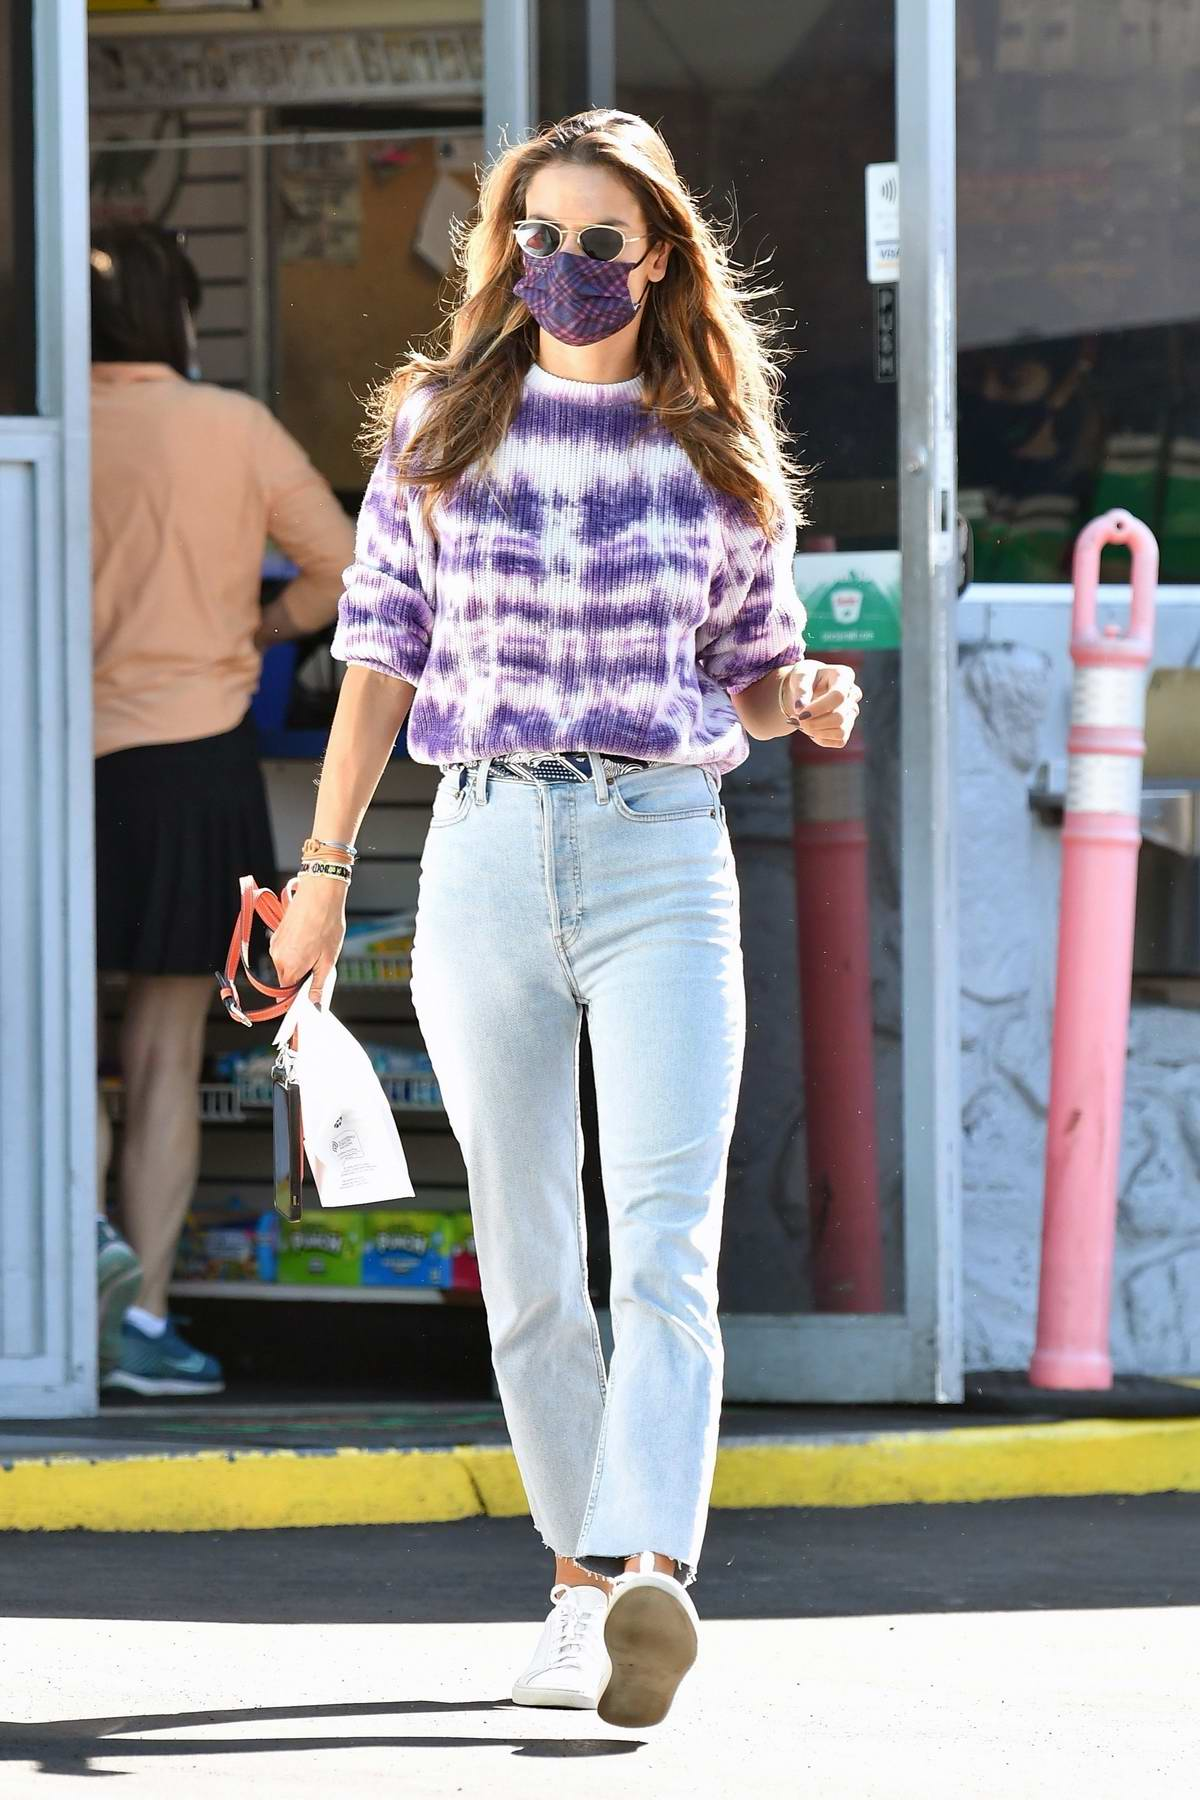 Alessandra Ambrosio looks lovely in a tie-dye top and jeans while making a quick stop at a gas station in Brentwood, California